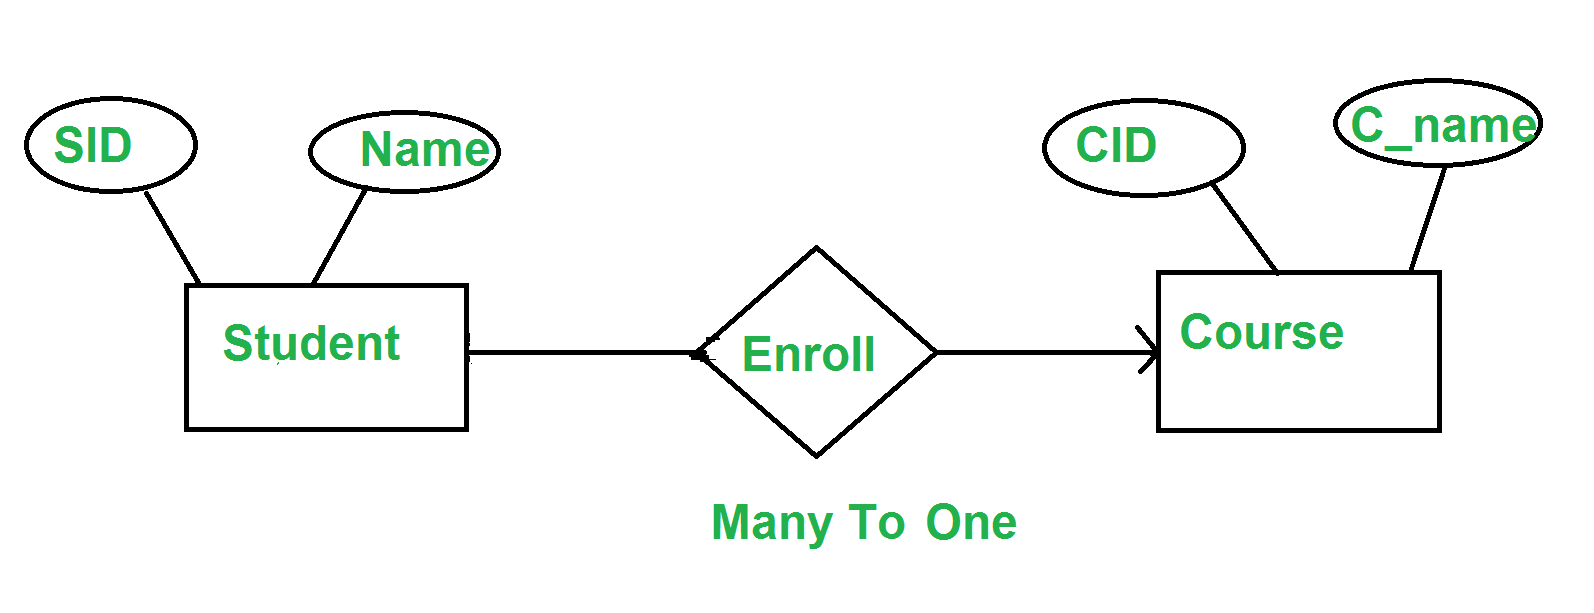 Minimization Of Er Diagrams - Geeksforgeeks throughout One To One Relationship Diagram